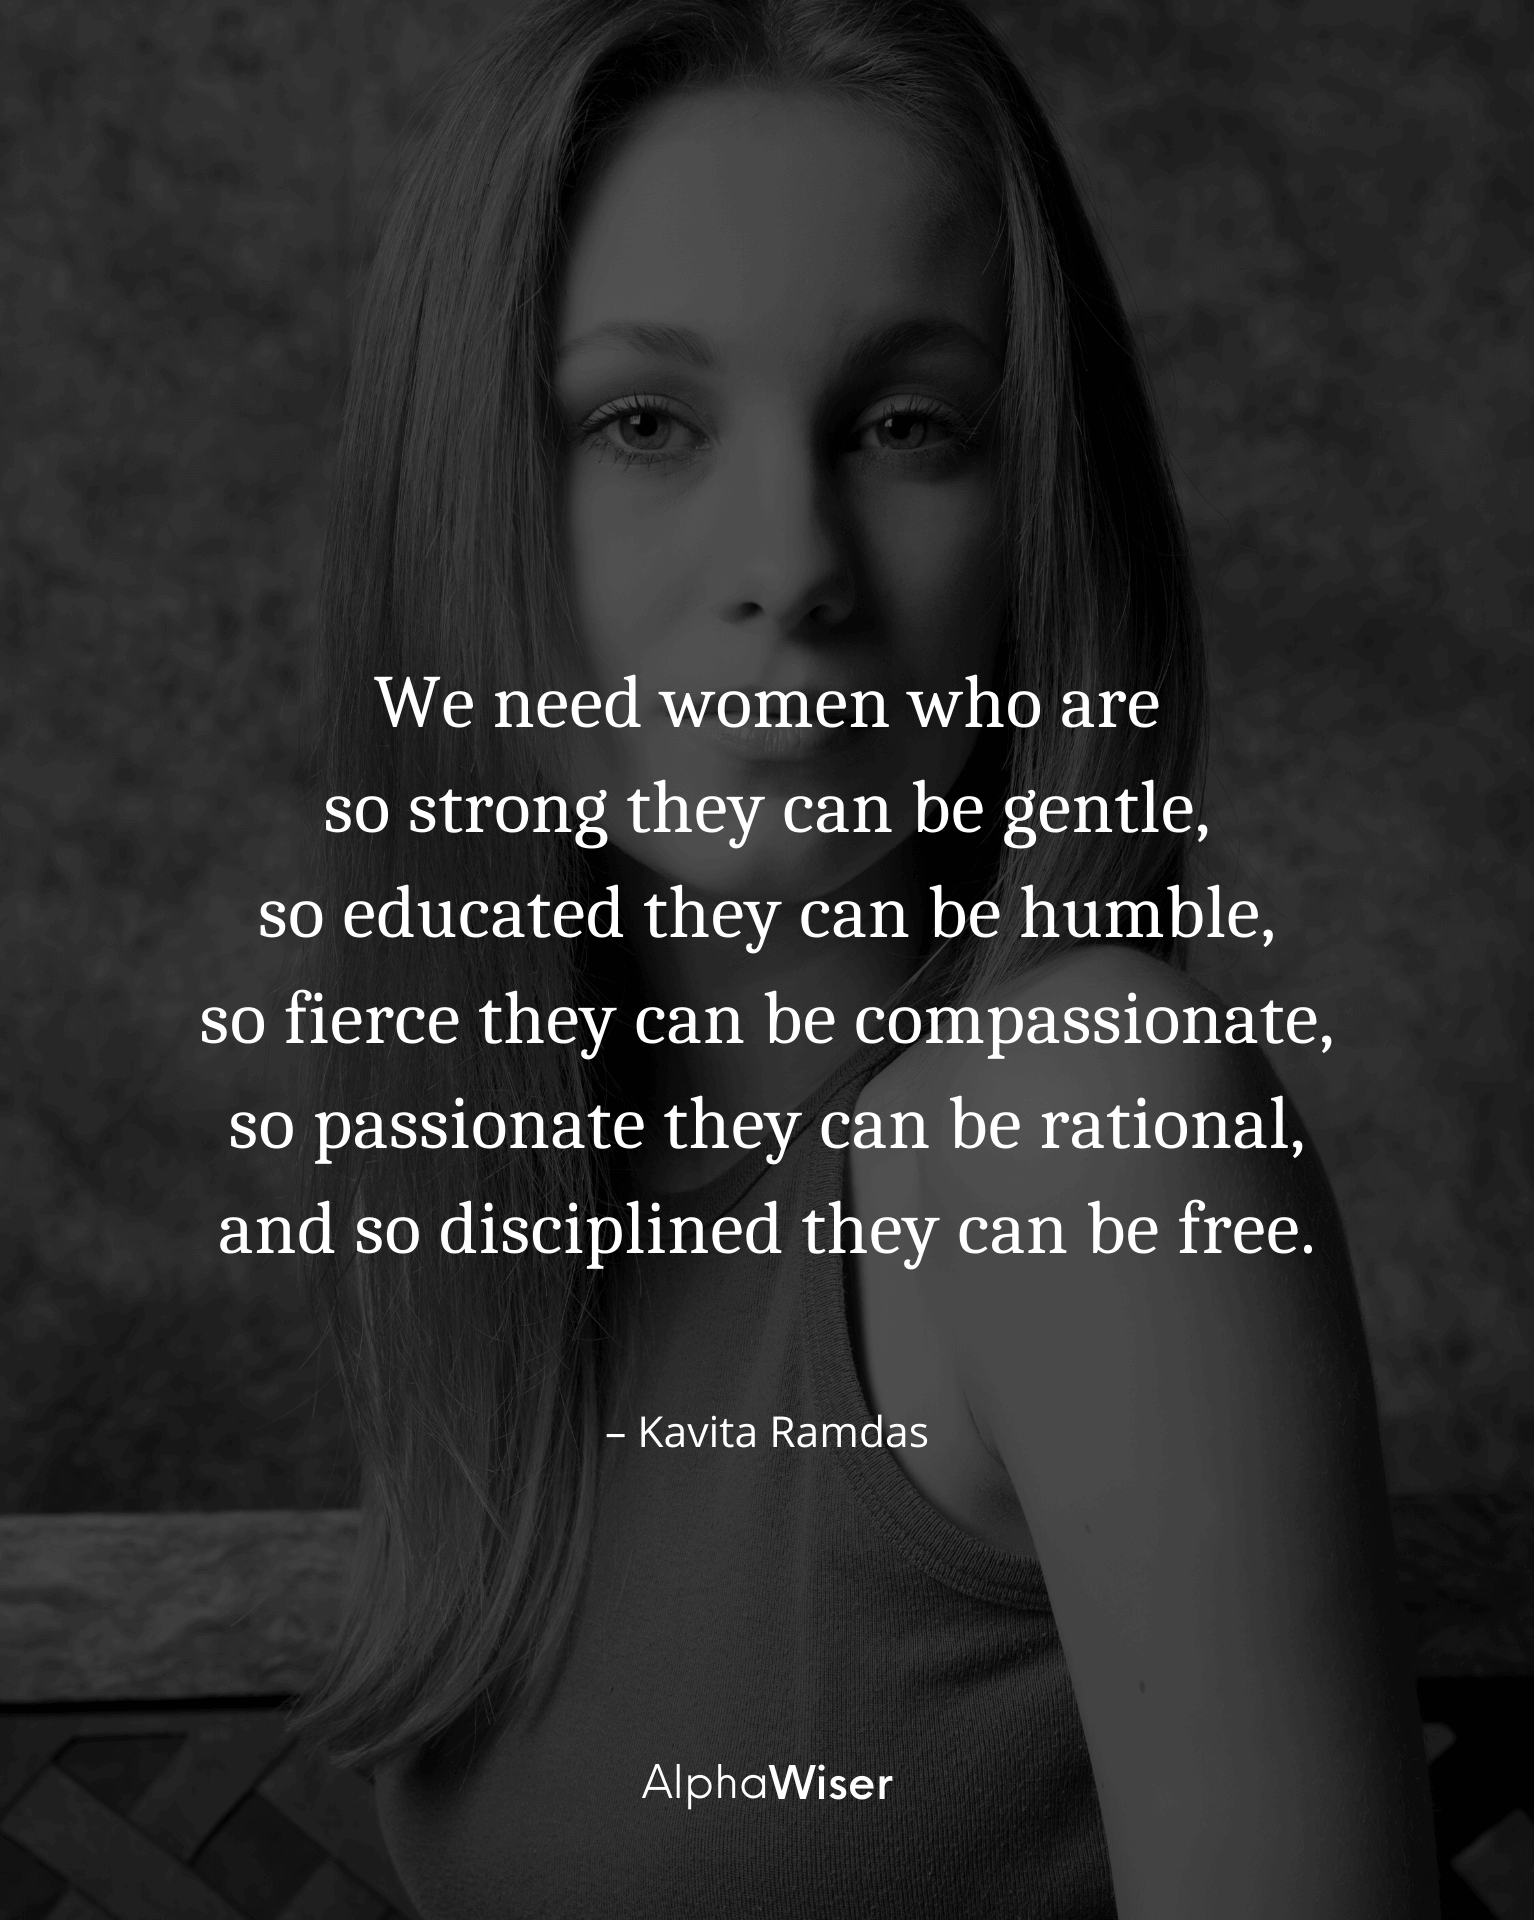 We need women who are so strong they can be gentle, so educated they can be humble, so fierce they can be compassionate